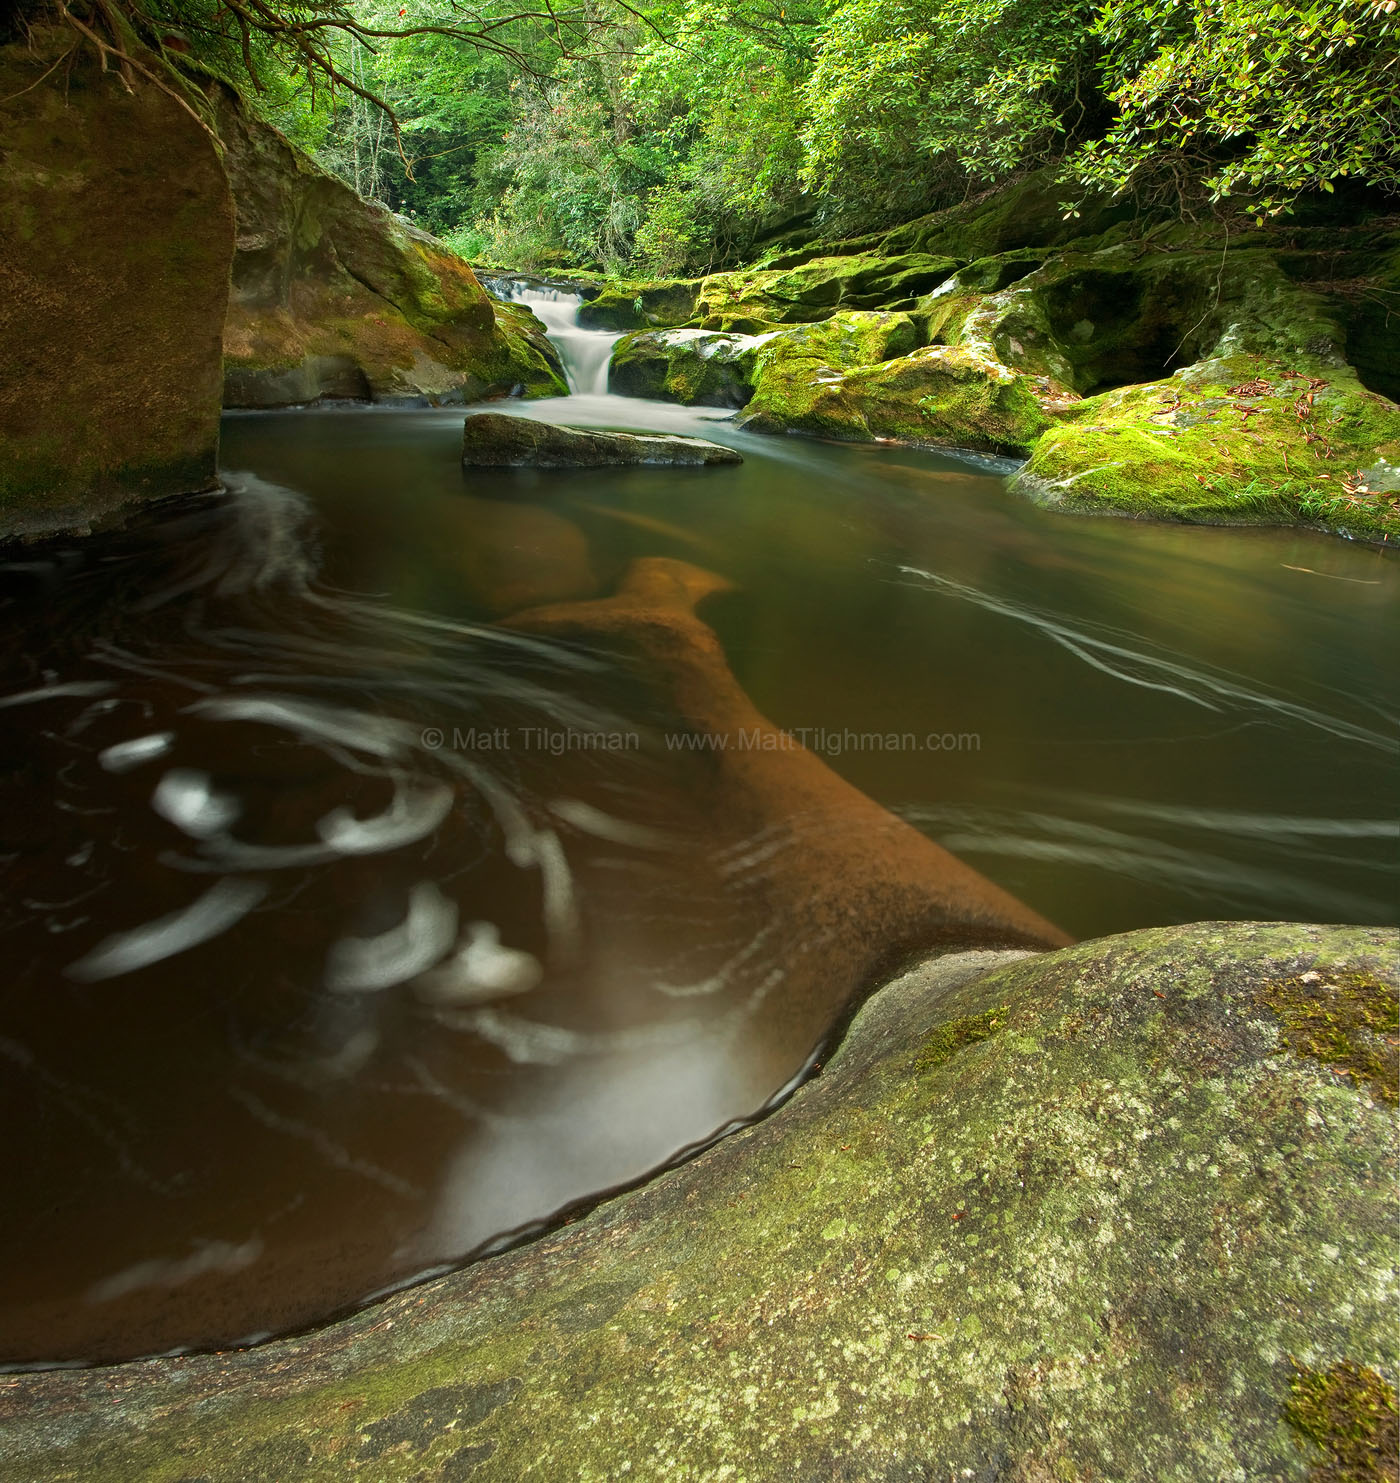 Fine art stock photograph taken in the headwaters of the Chattooga River, in the lush Appalachian Mountains of Western North Carolina.